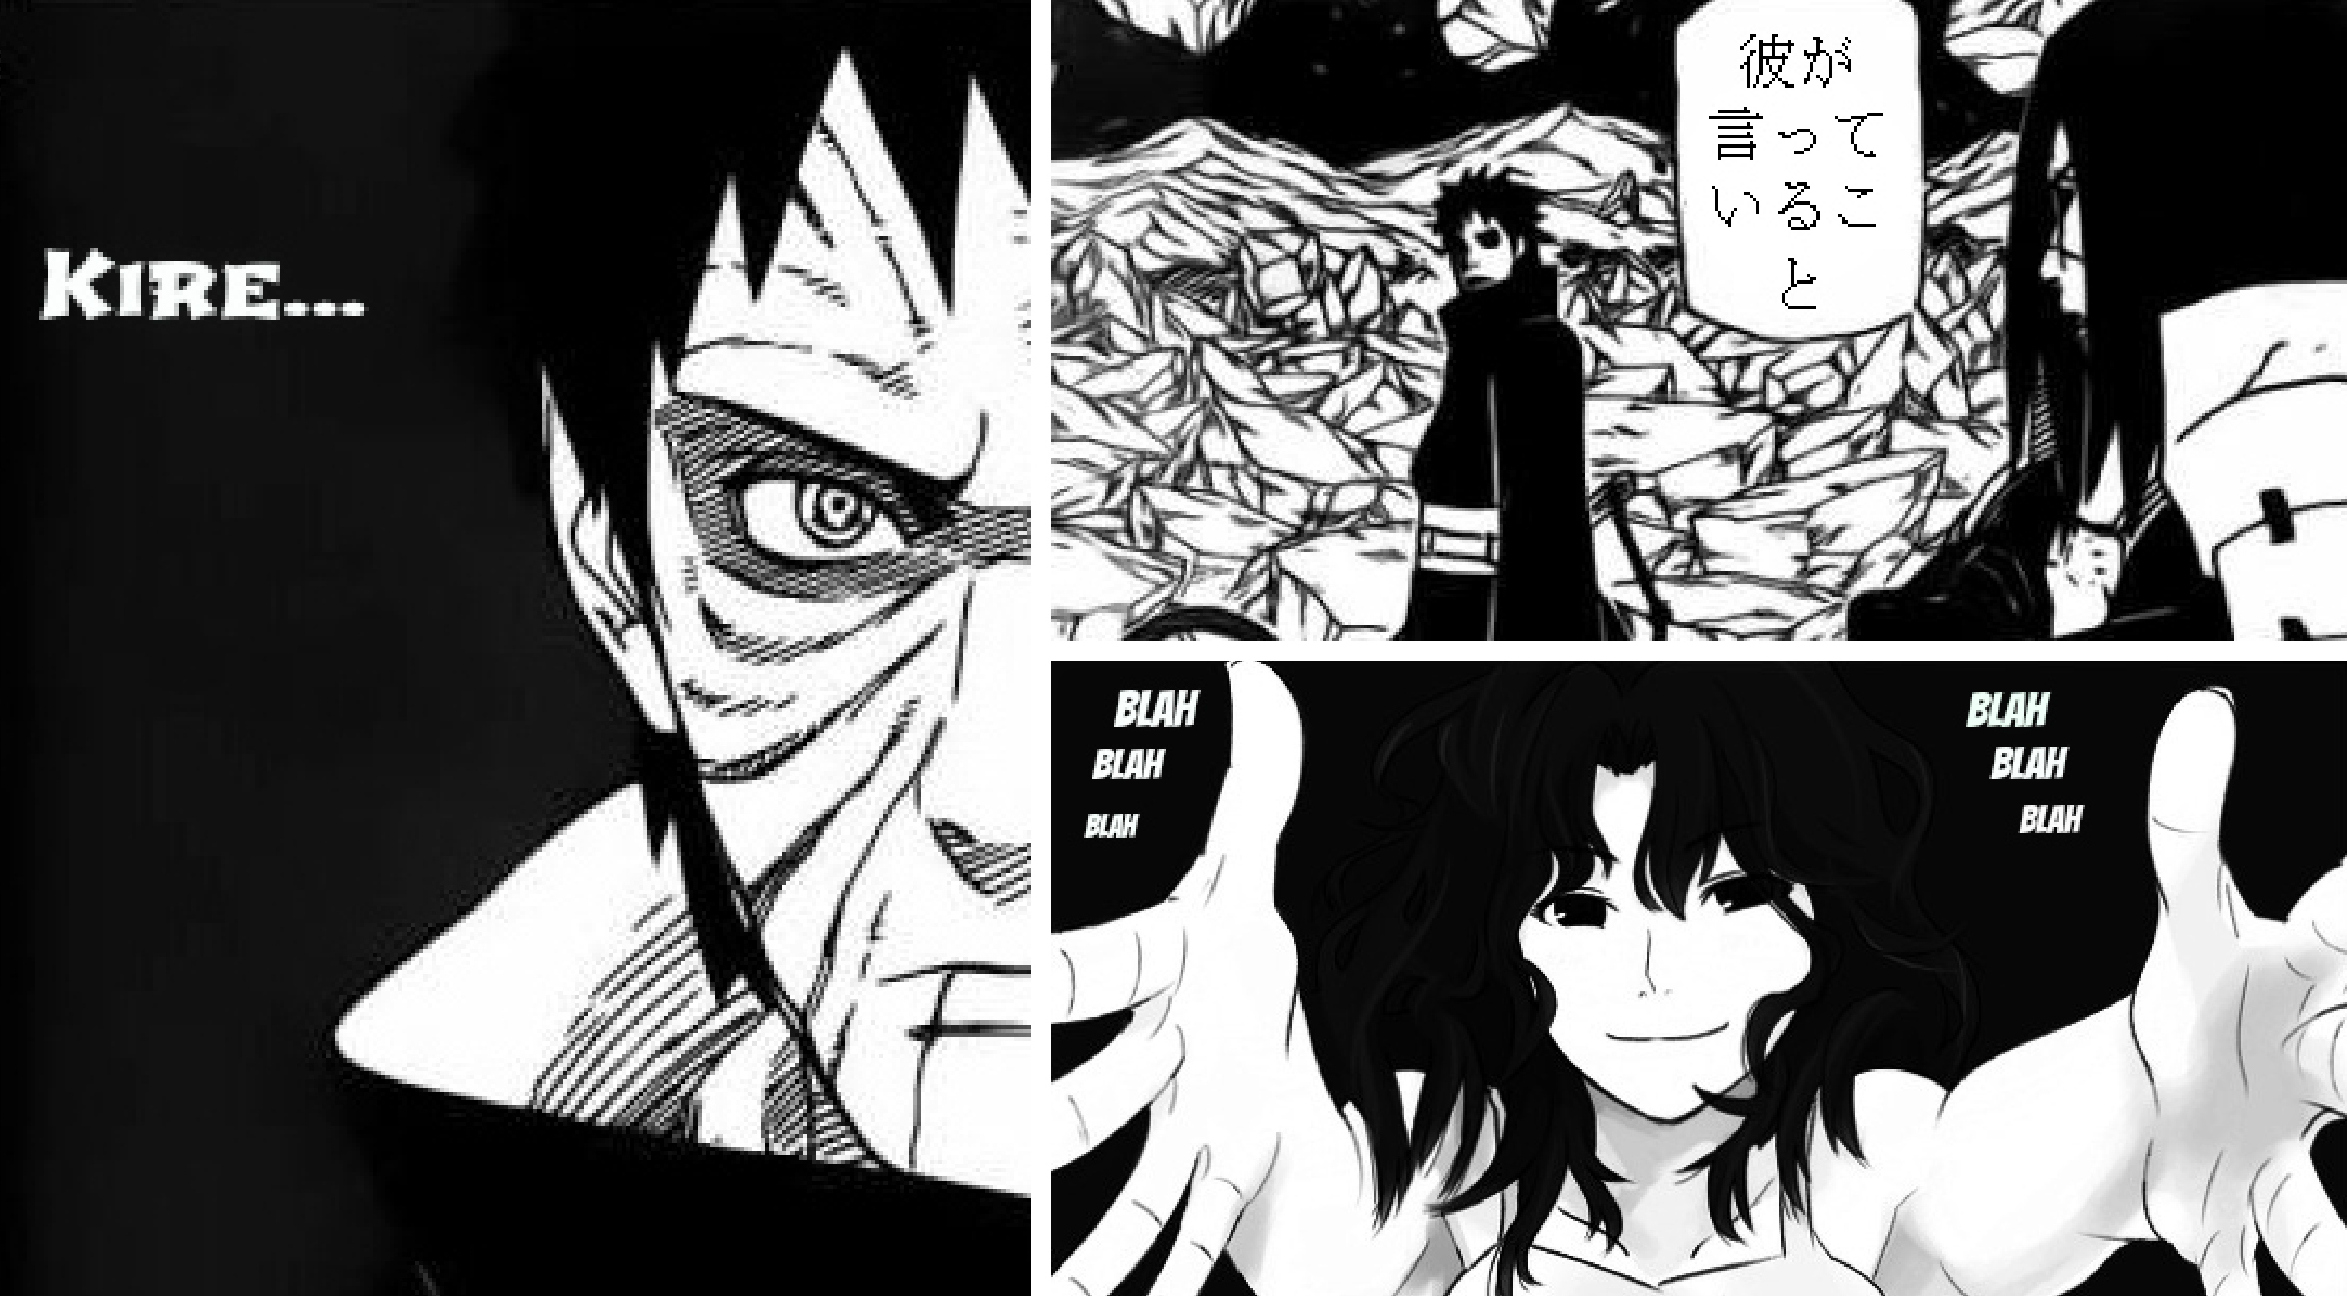 Uchiha Obito Images Fan Made Edited Manga  Hd Wallpaper And Background Photos